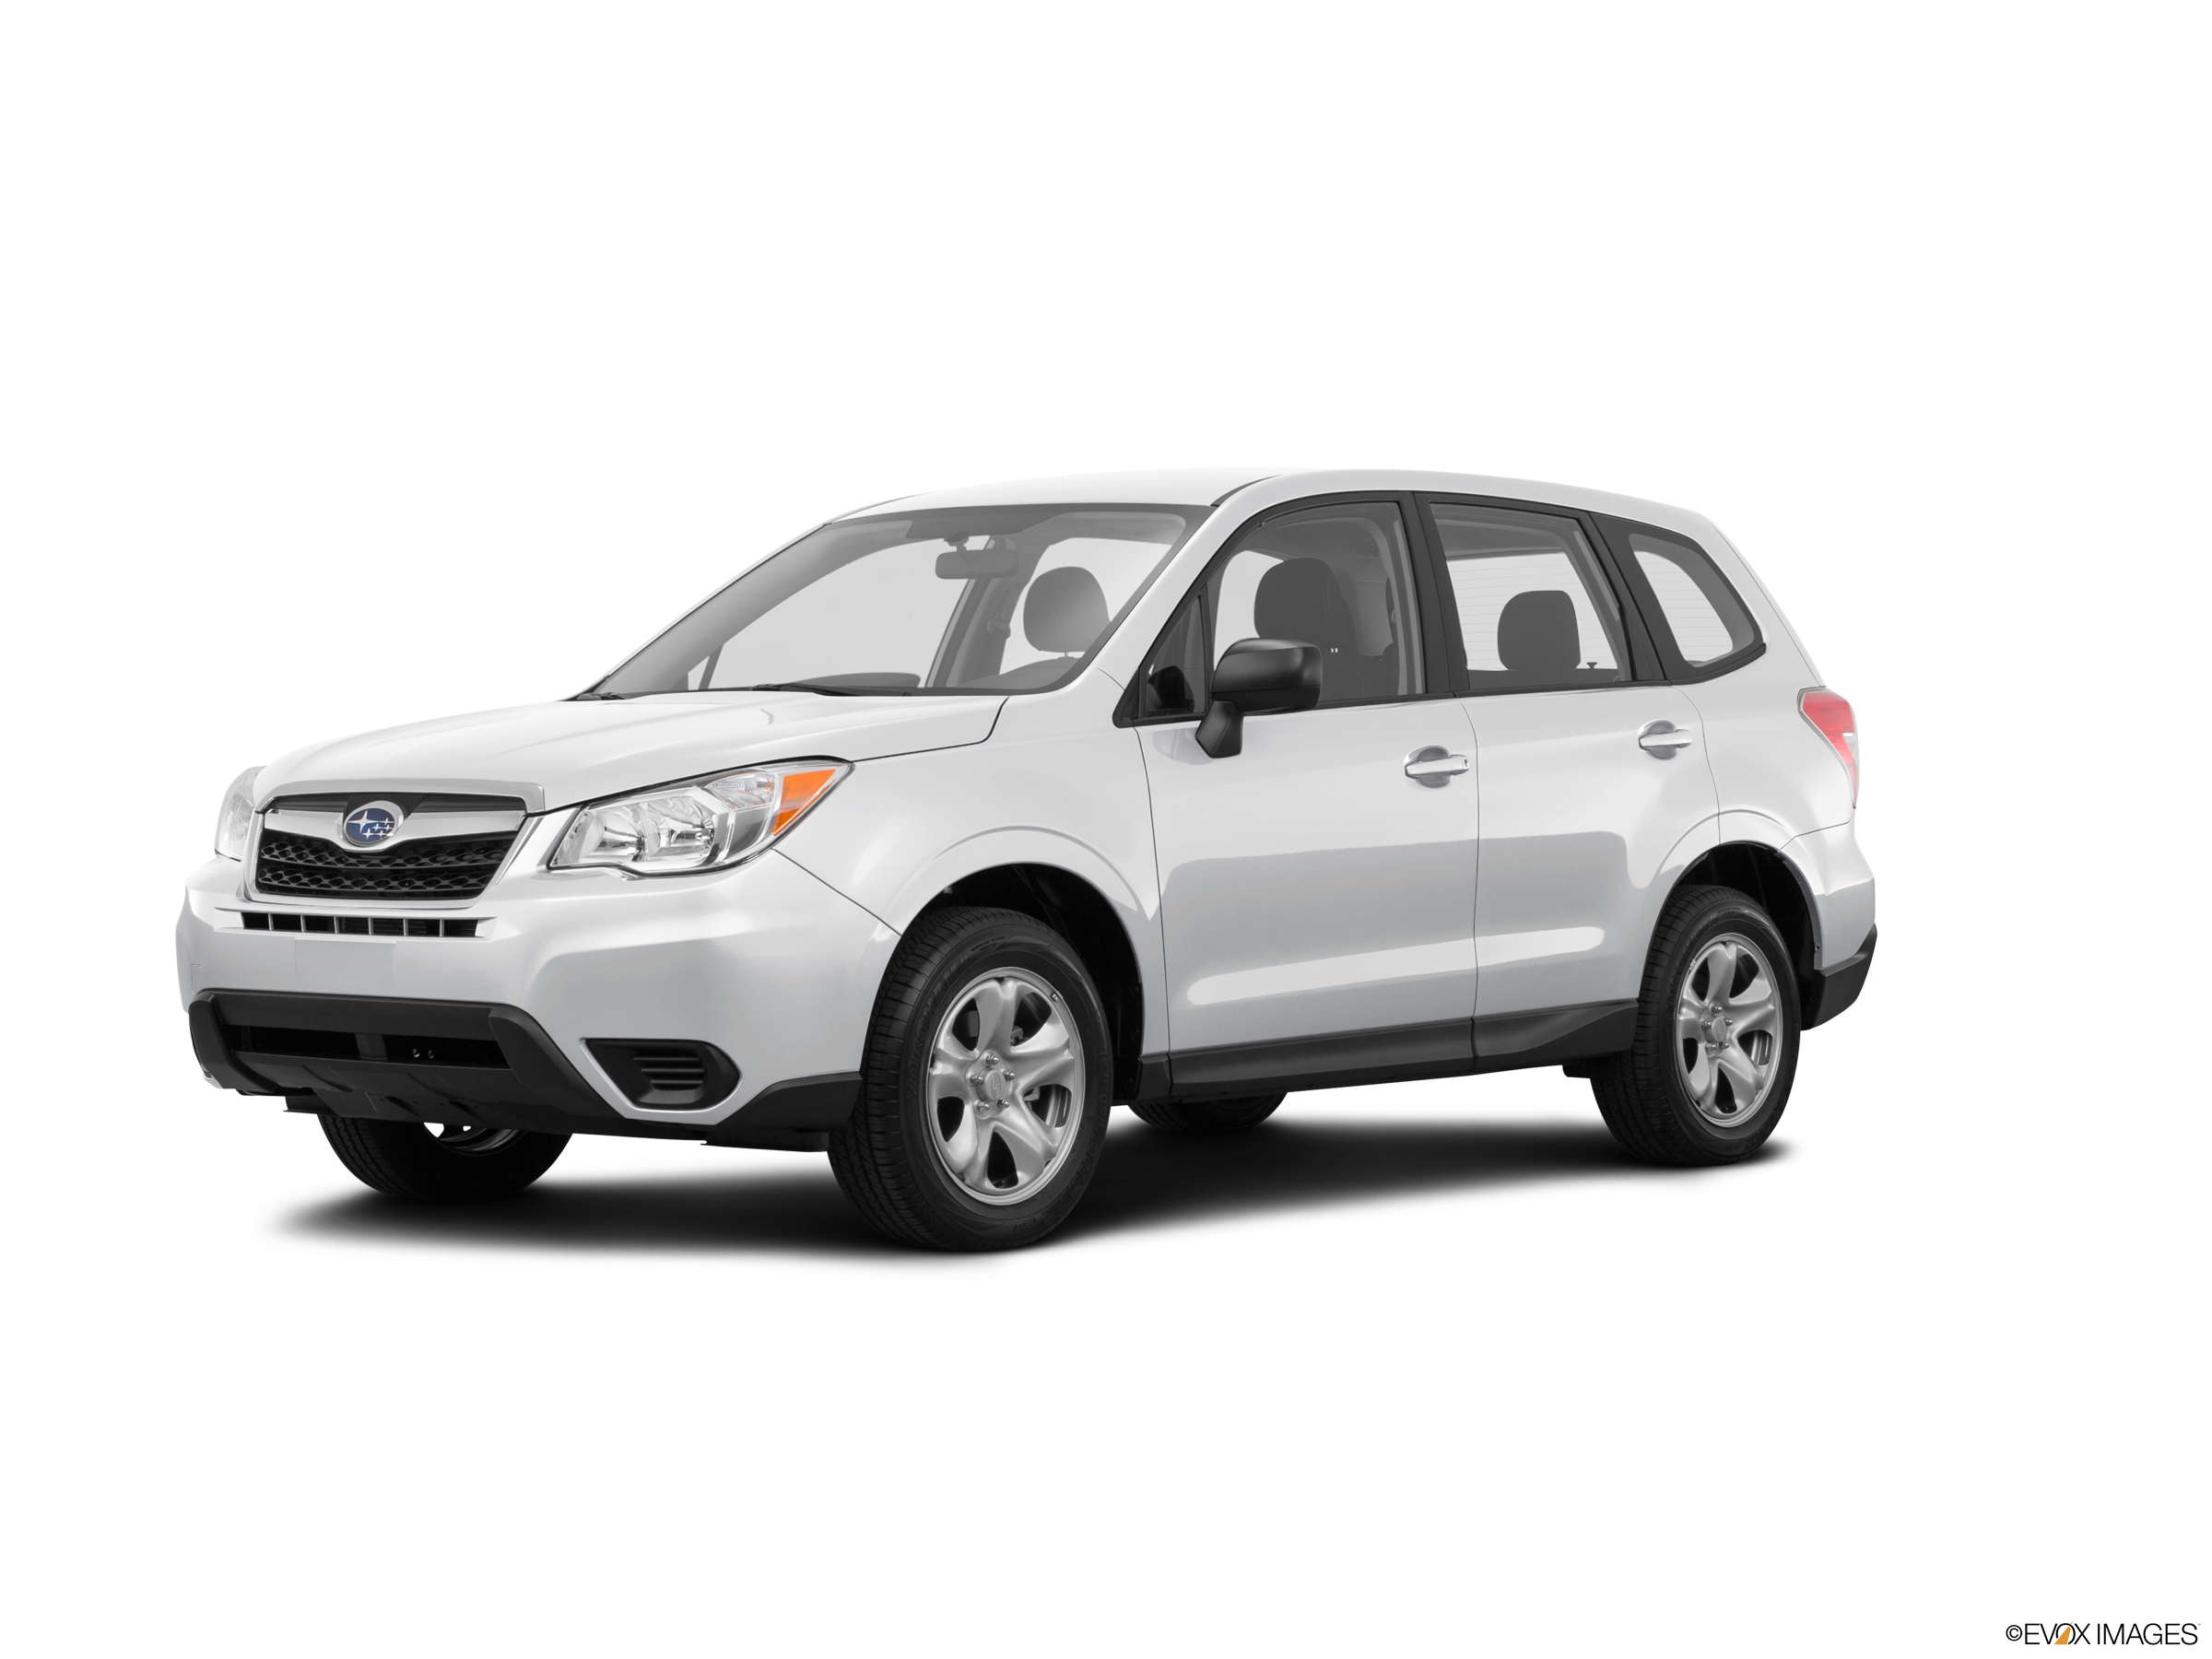 2016 subaru forester values cars for sale kelley blue book 2016 subaru forester values cars for